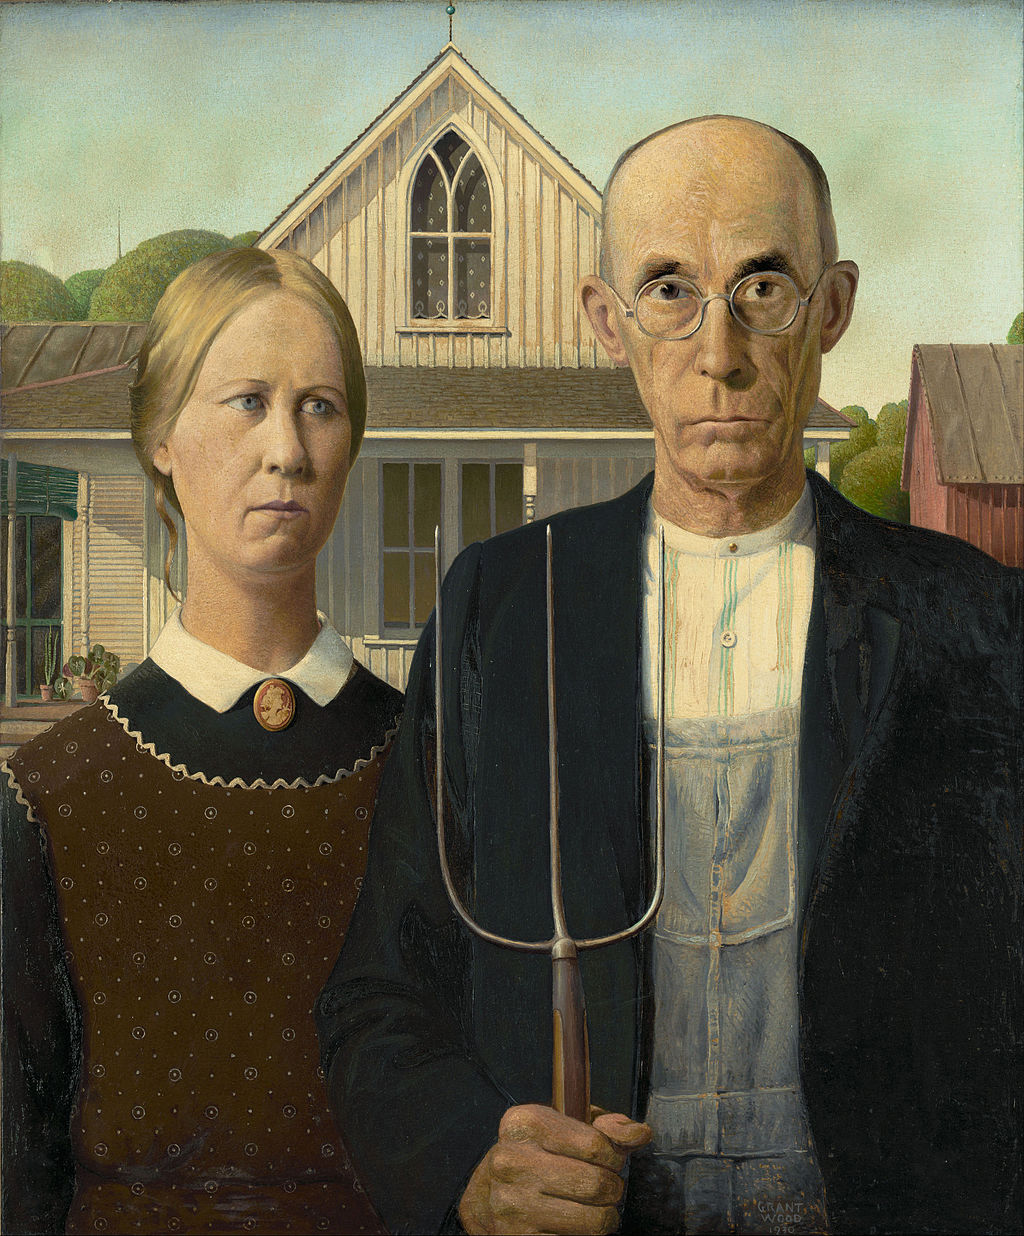 """American Gothic"" by Grant Wood"